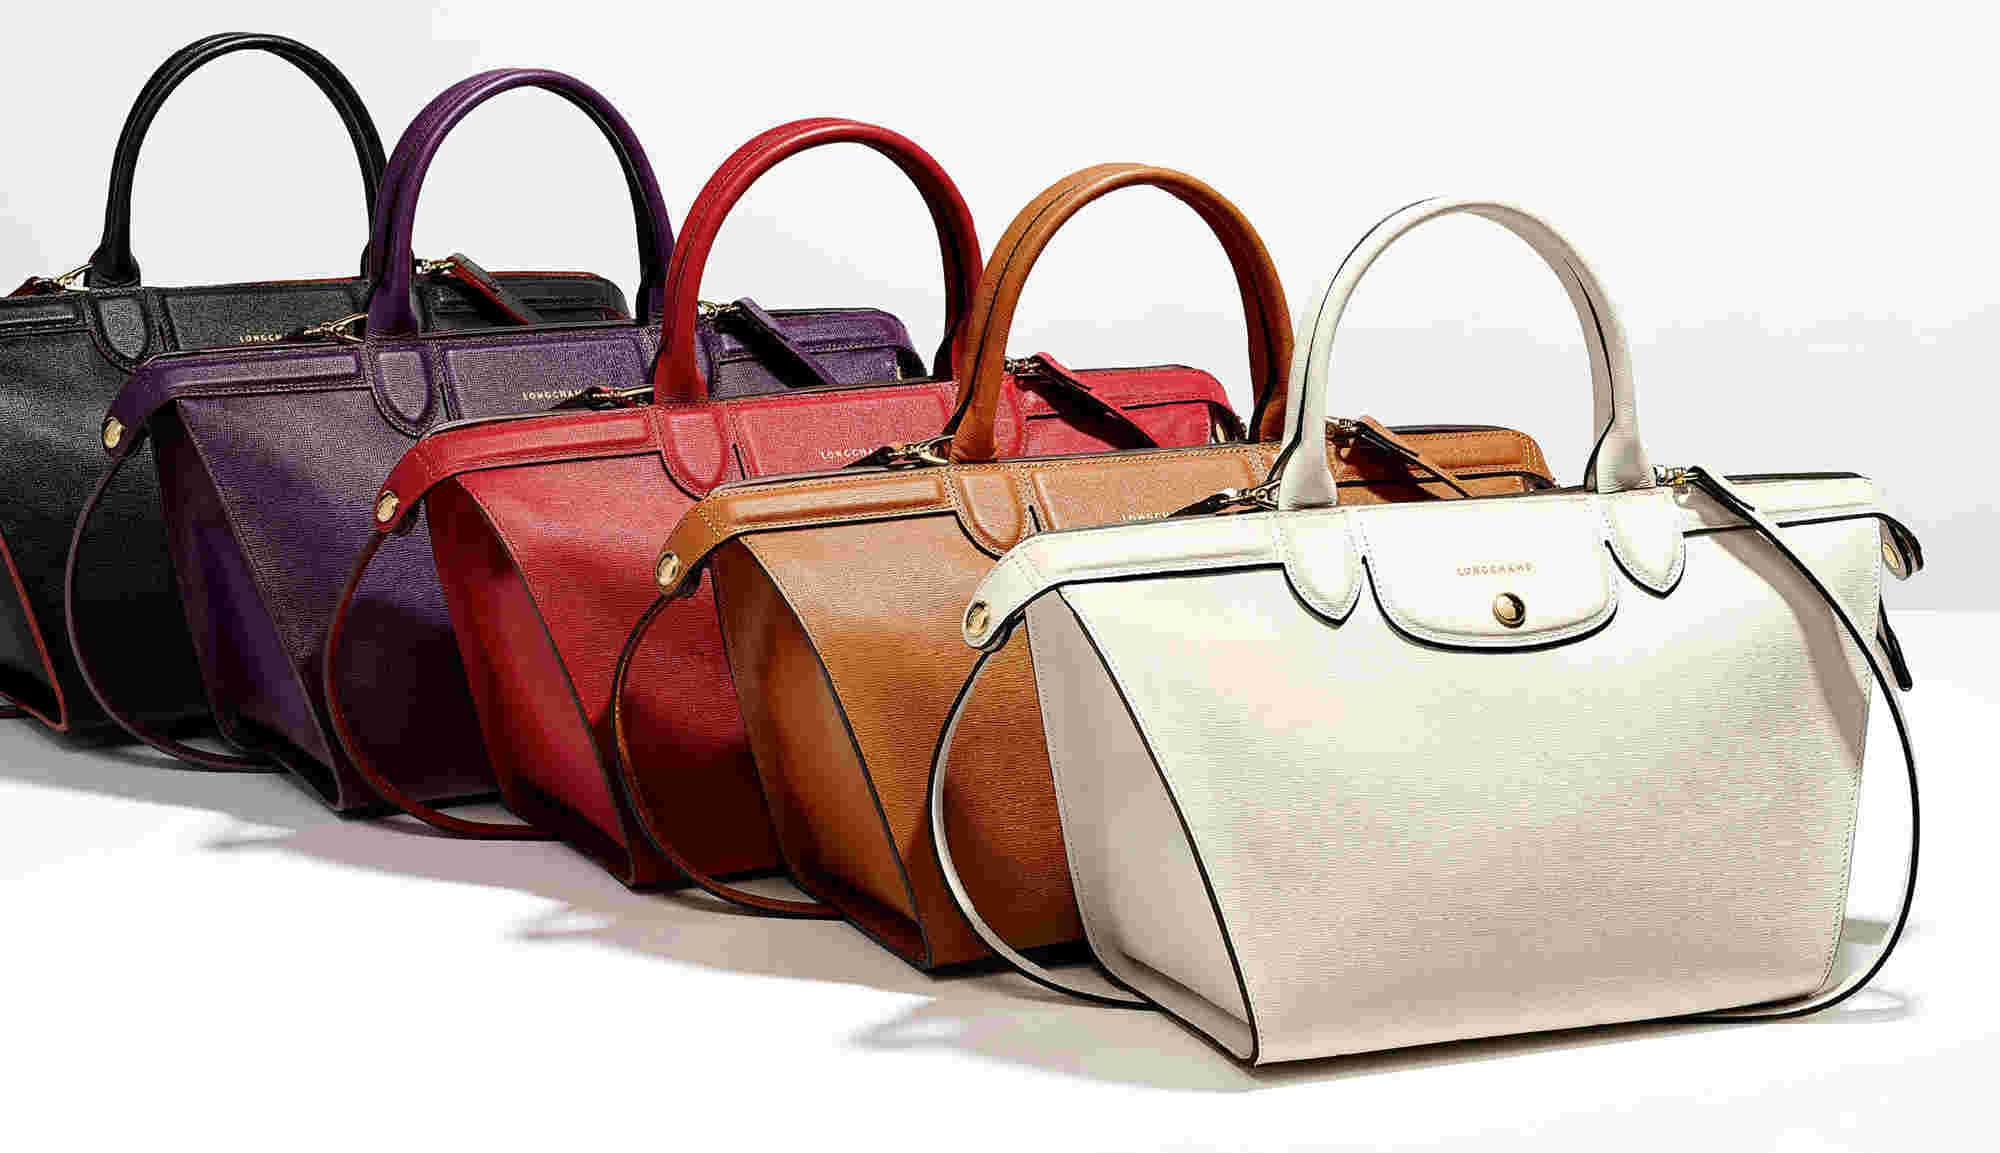 Longchamp Bags in Different colors